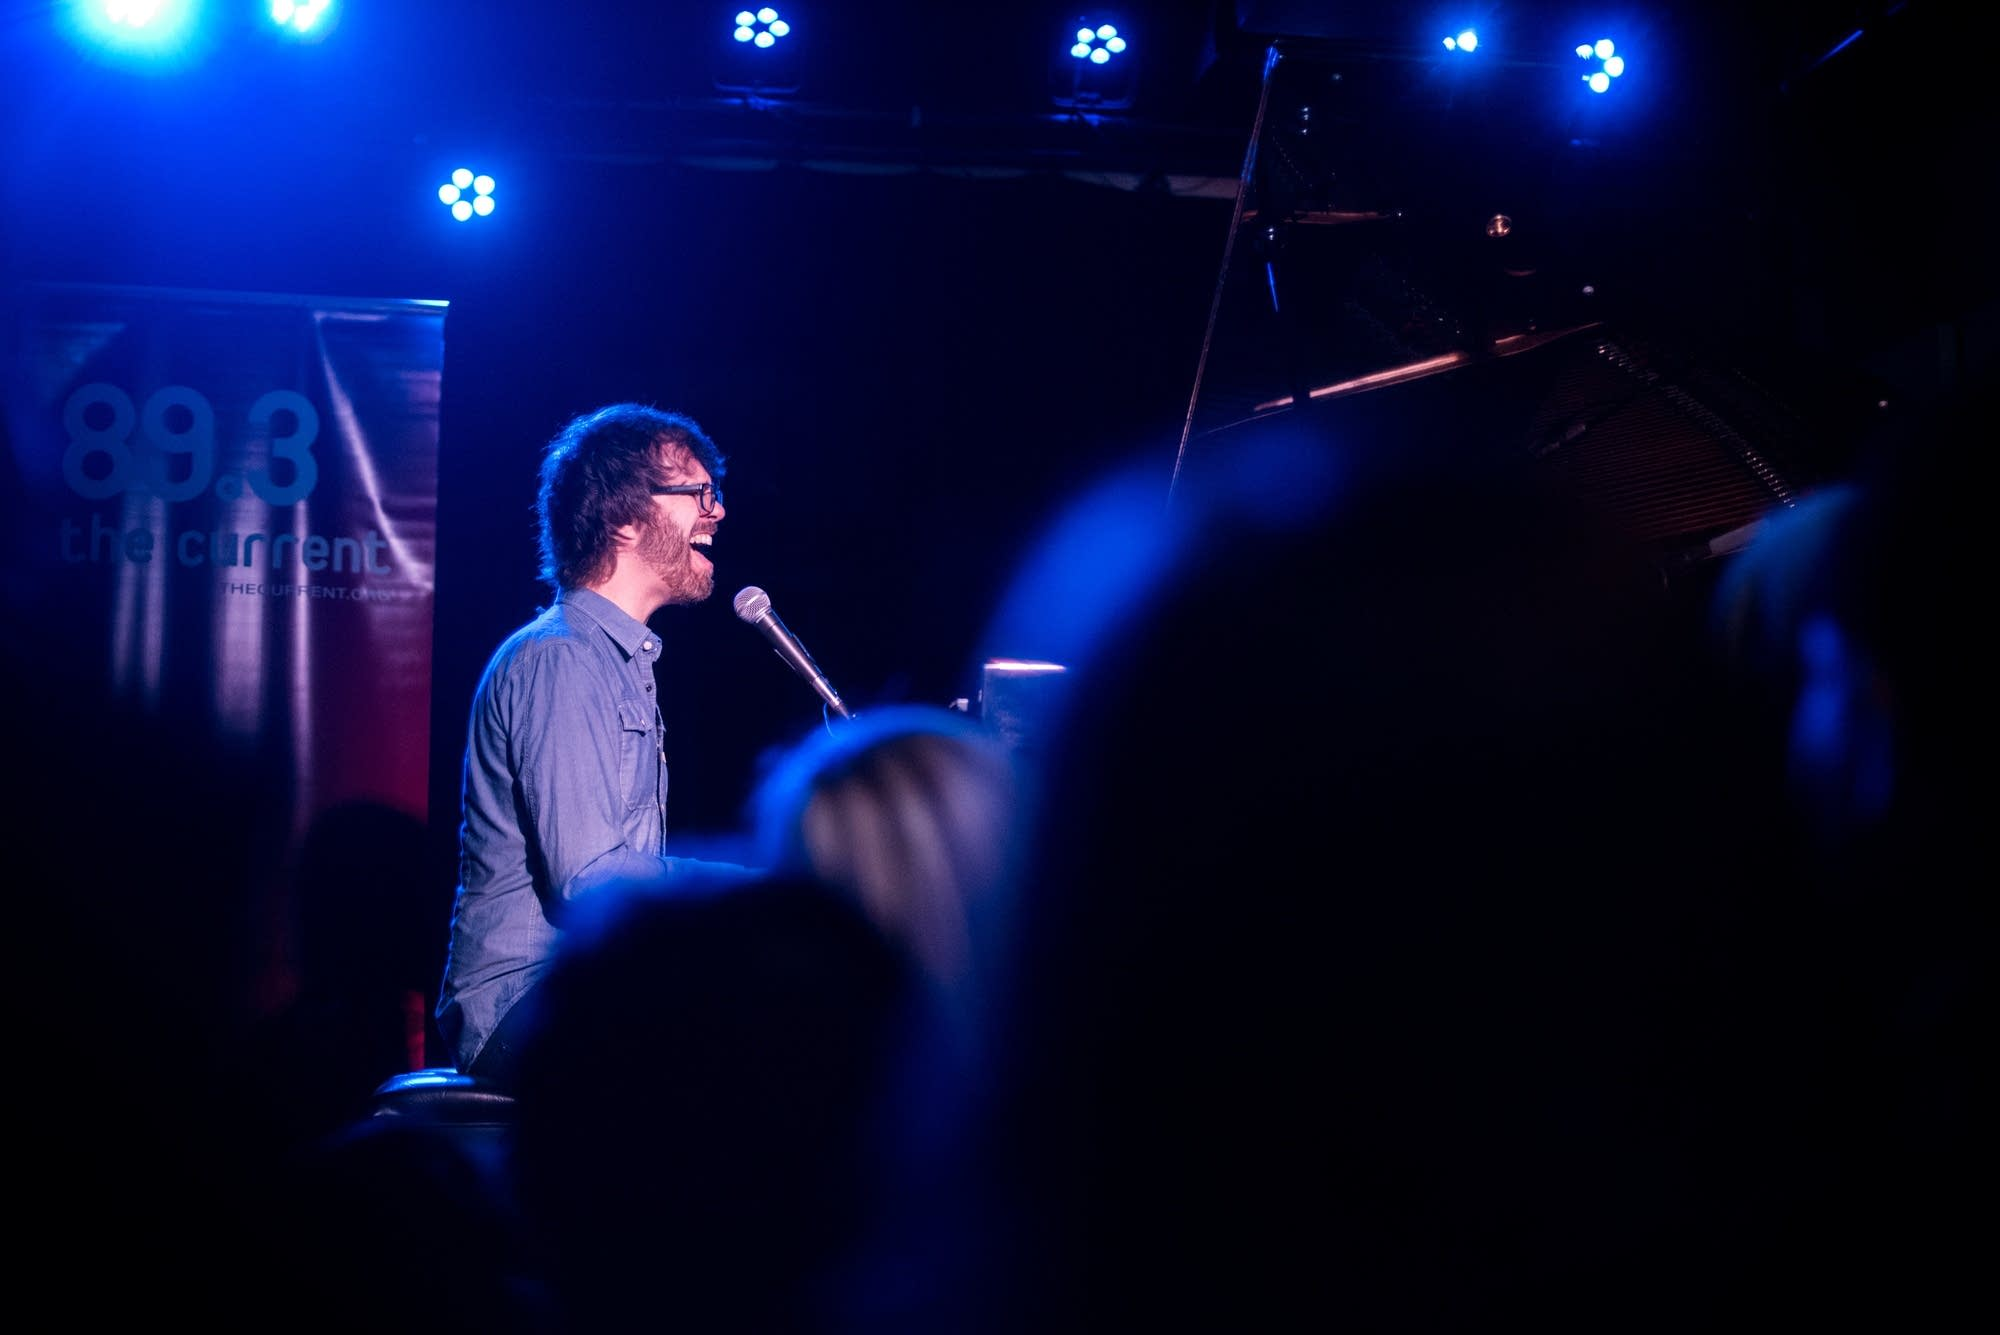 Ben Folds at the Turf Club - 1